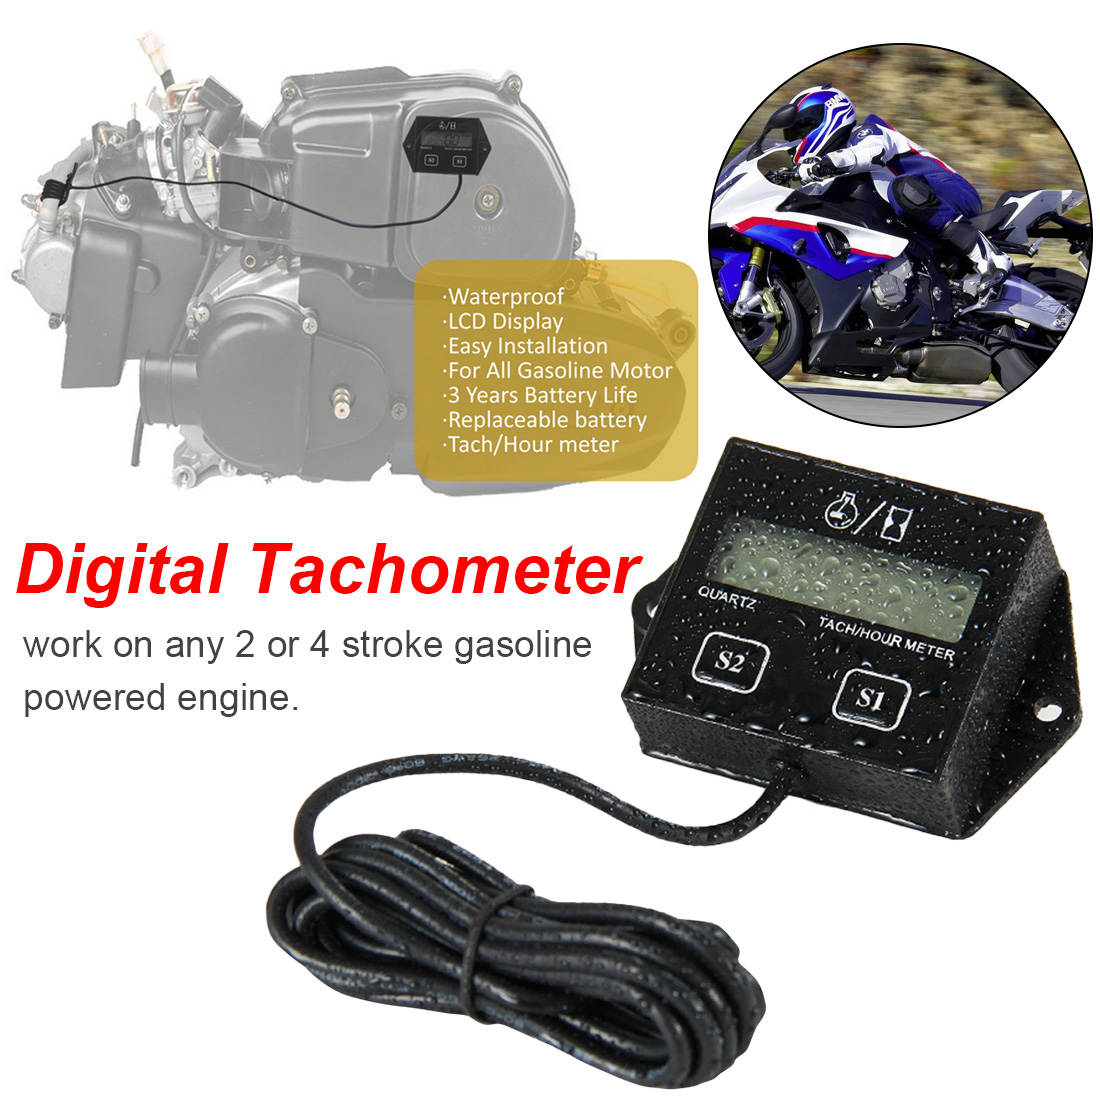 Digital Tachometer Engine Tach Hour Meter LCD Display inductive Tachometer  Tacho Tach Gauge Spin For Motorcycle Car bike Boat